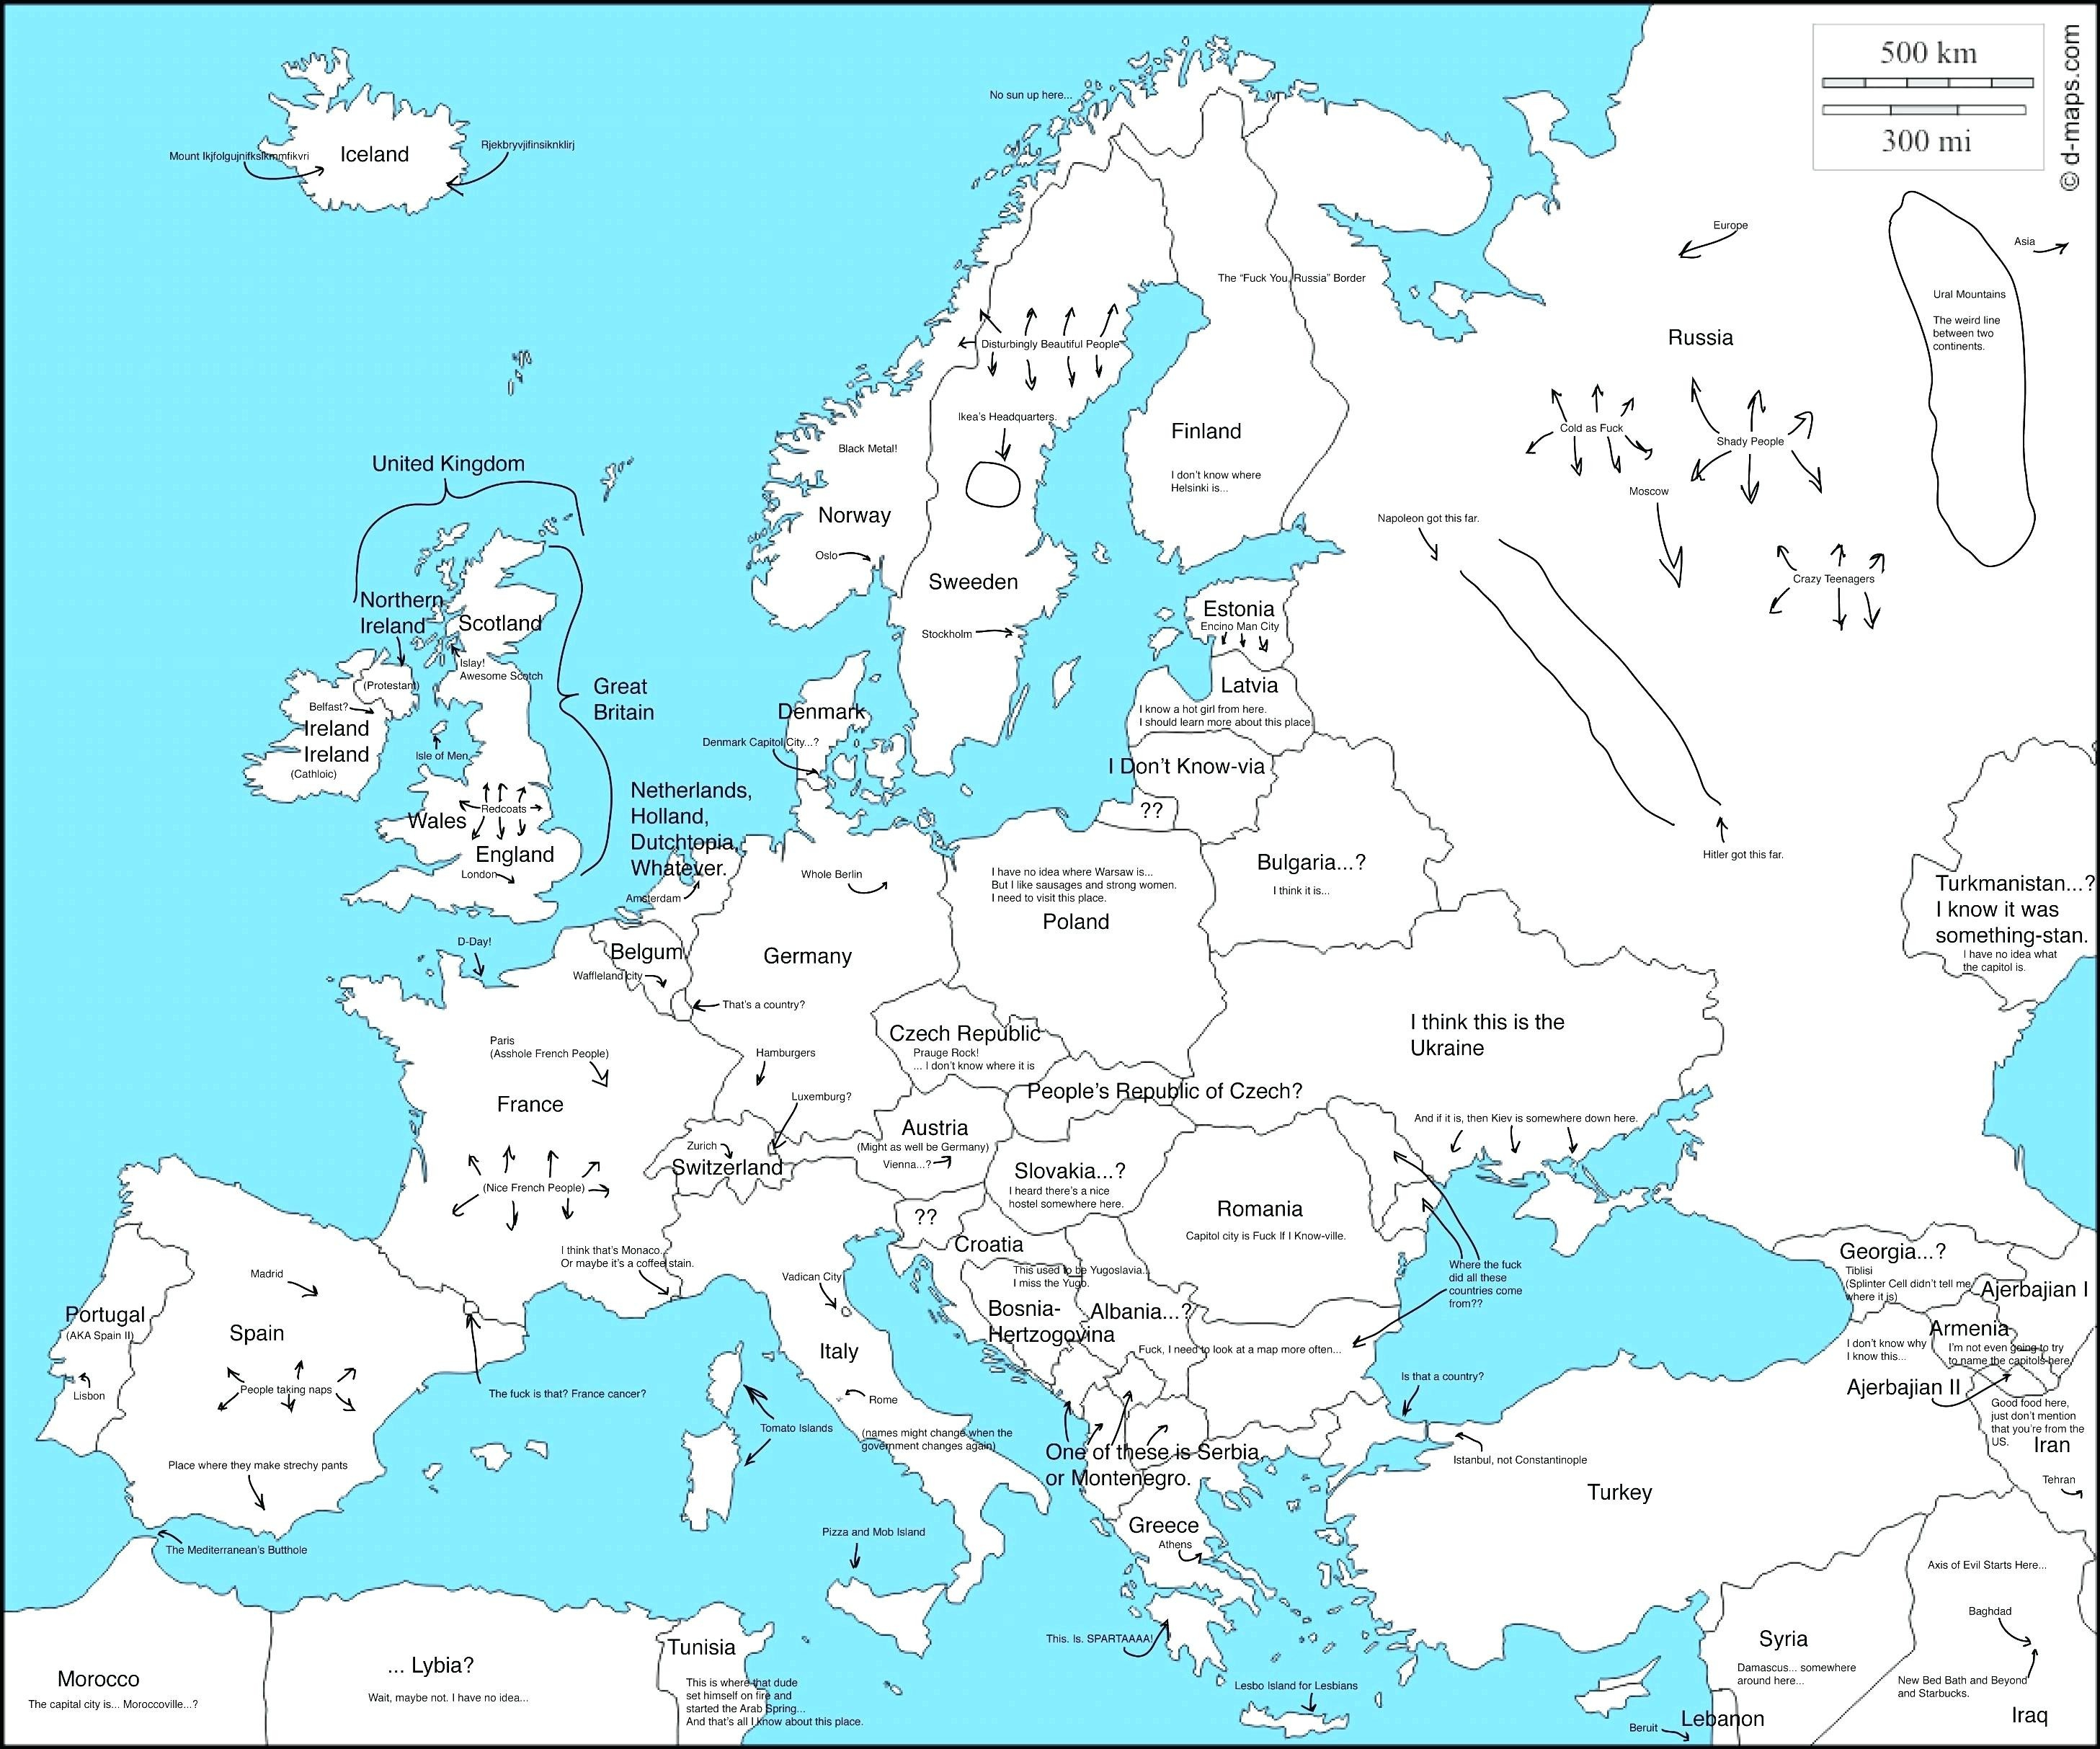 Printable Map Of Europe Labeled - 17.1.hus-Noorderpad.de ...